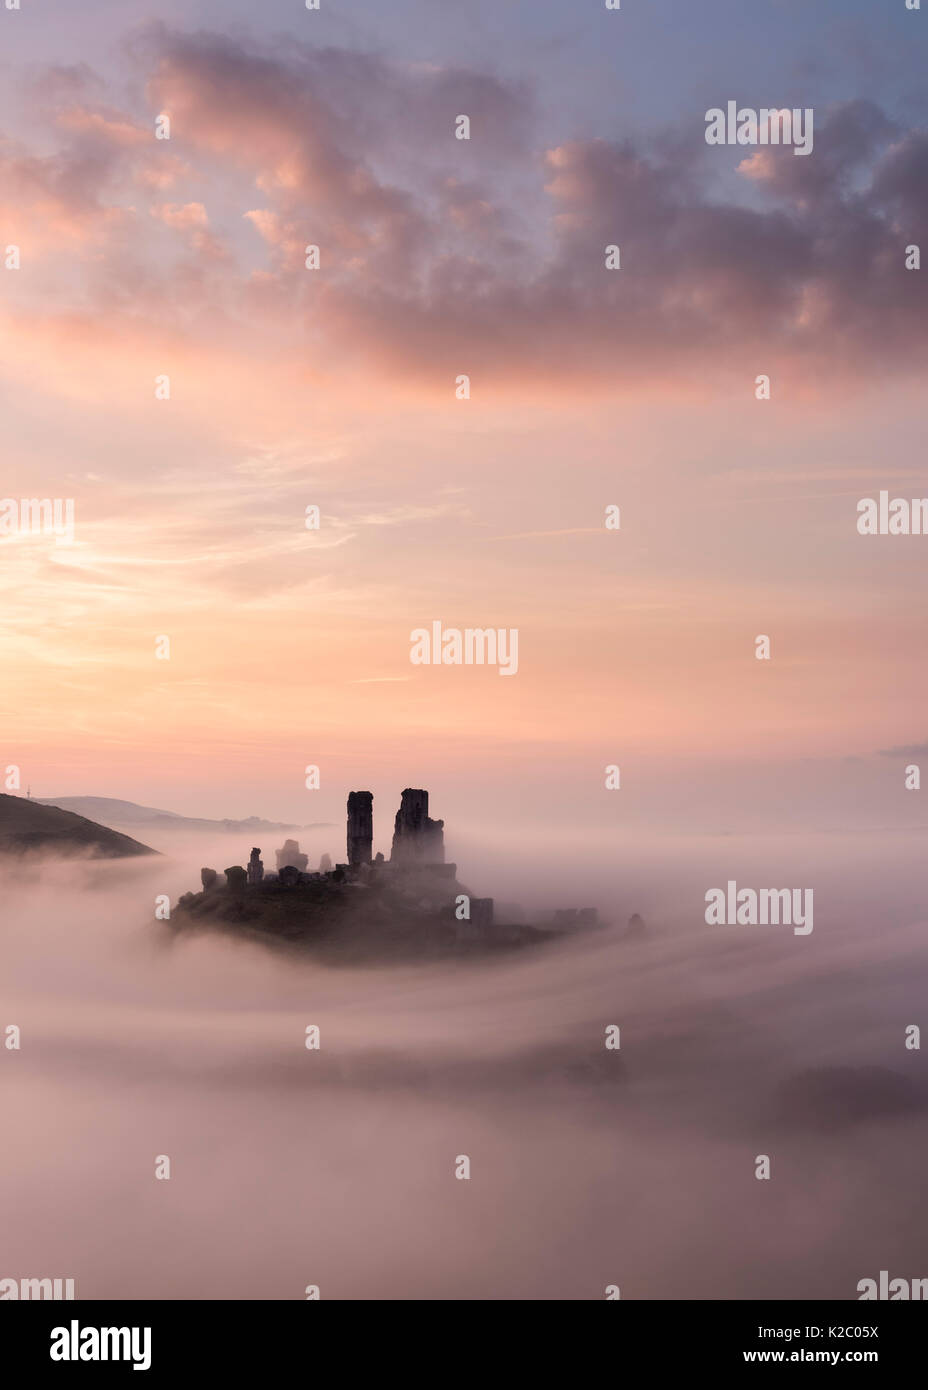 Corfe Castle at dawn with mist, Corfe Castle, Dorset, UK. September 2014. - Stock Image